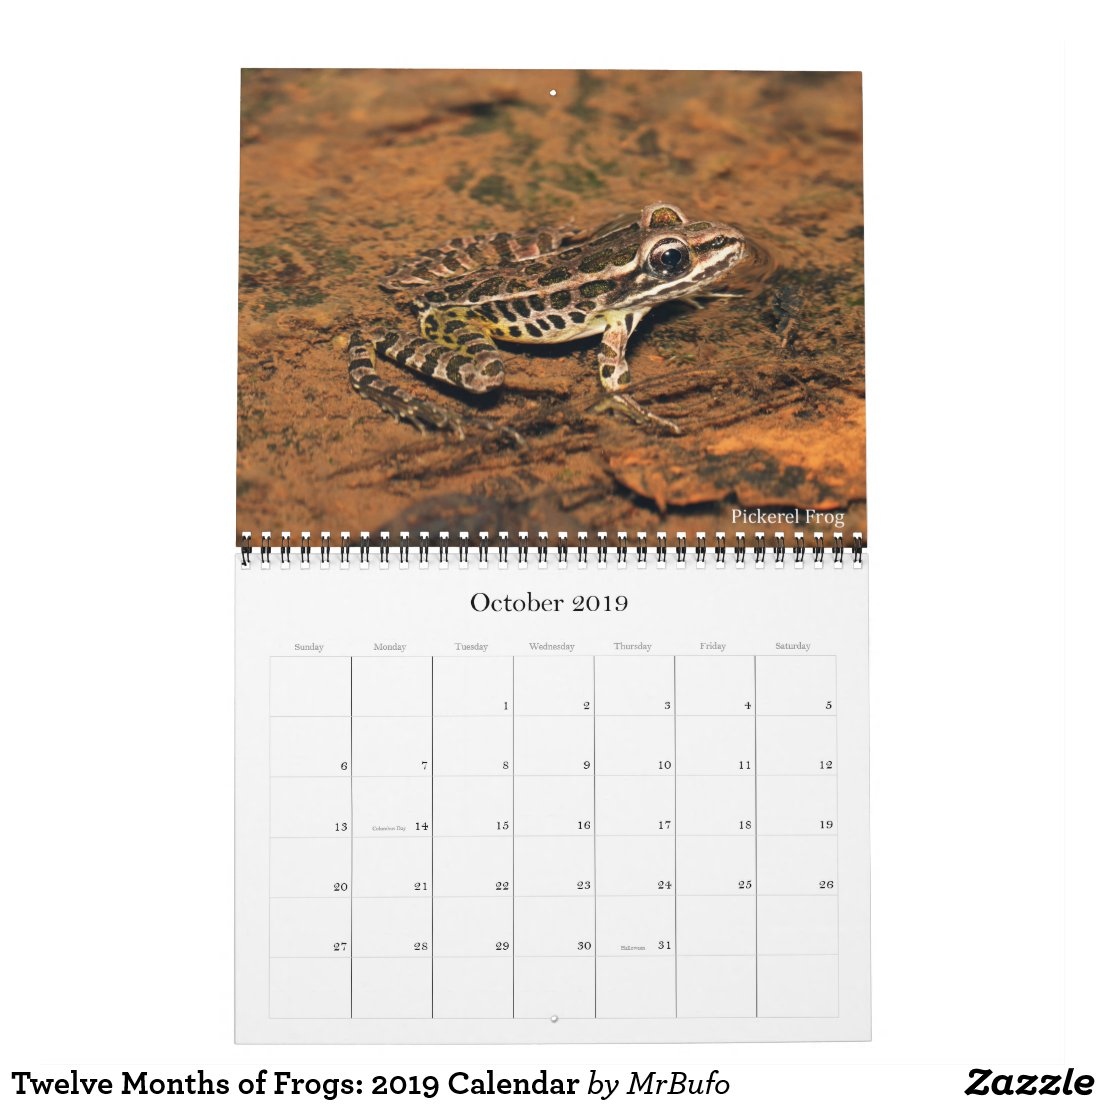 2019 Frog Photo Calendar for sale